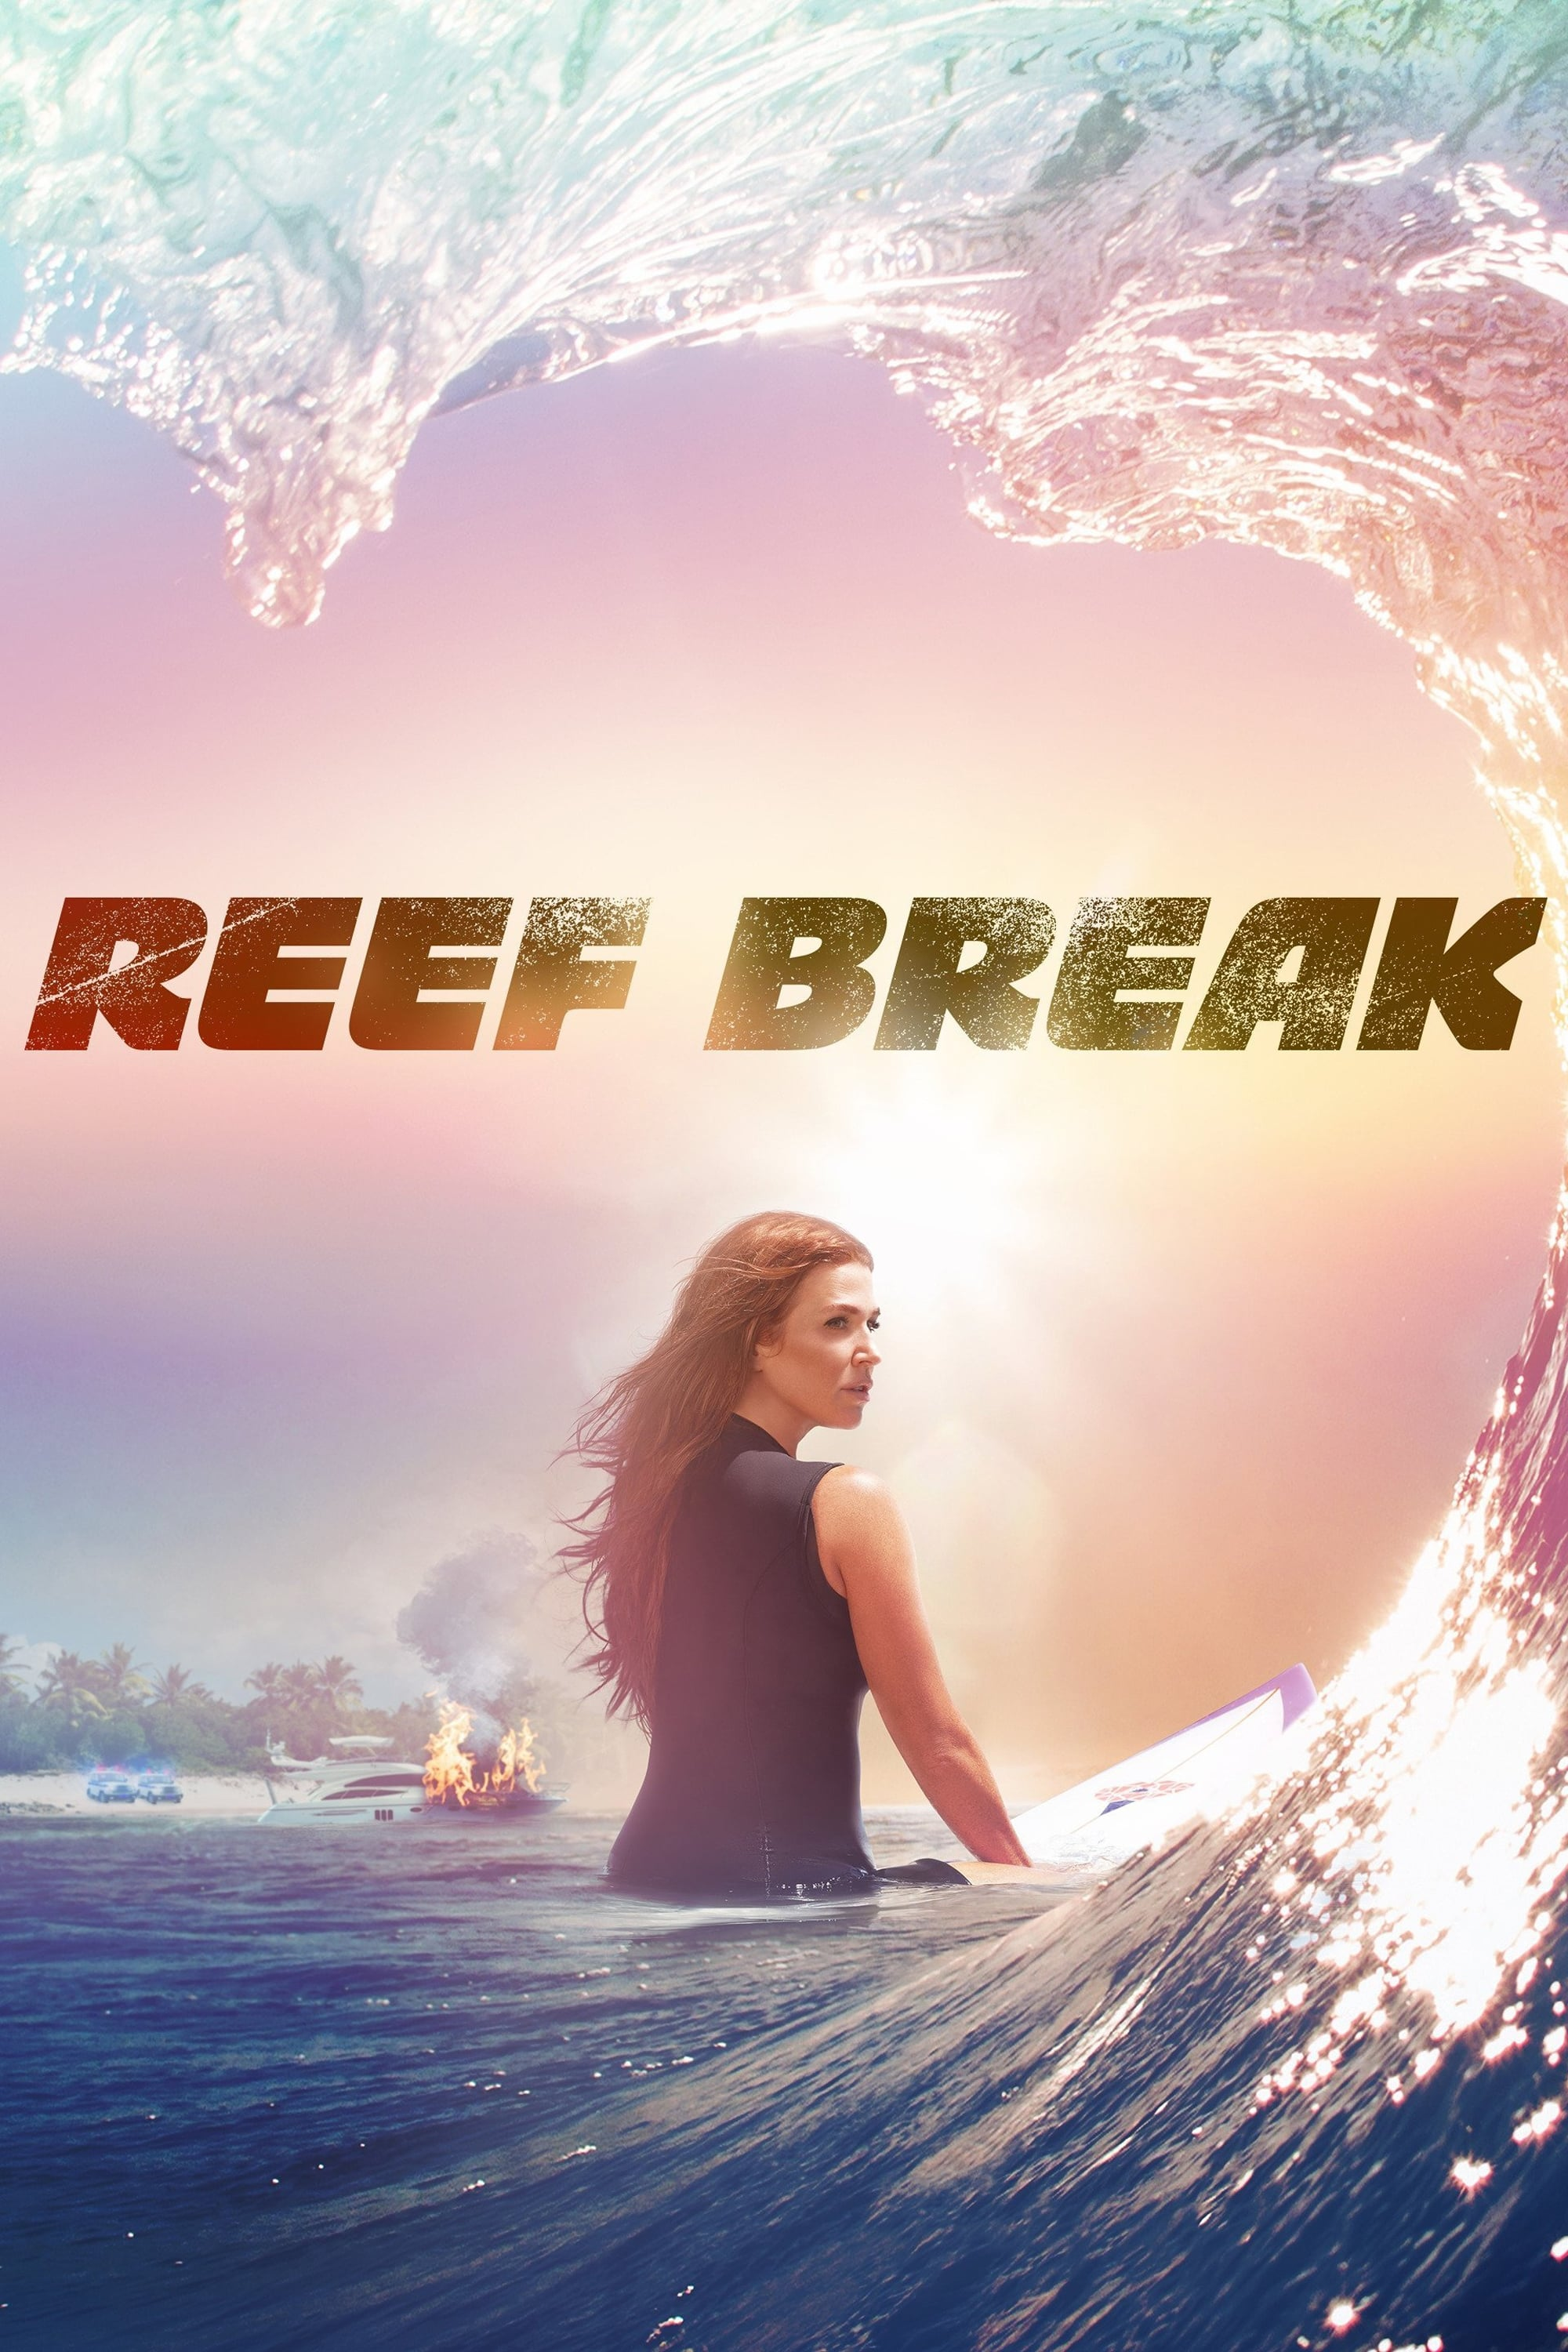 Reef Break Season 1